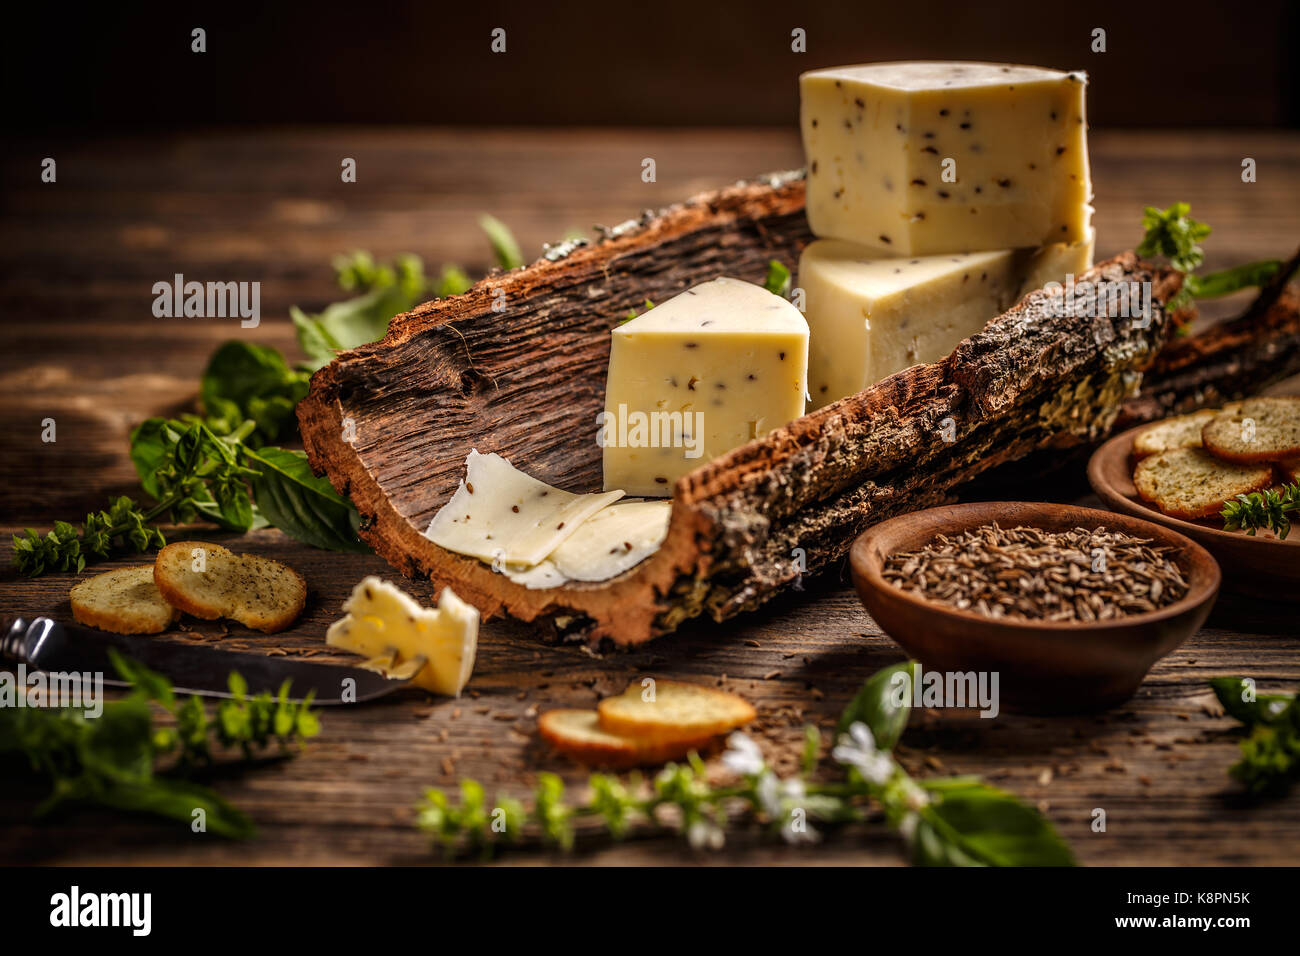 Cheese on a bark with caraway seeds - Stock Image